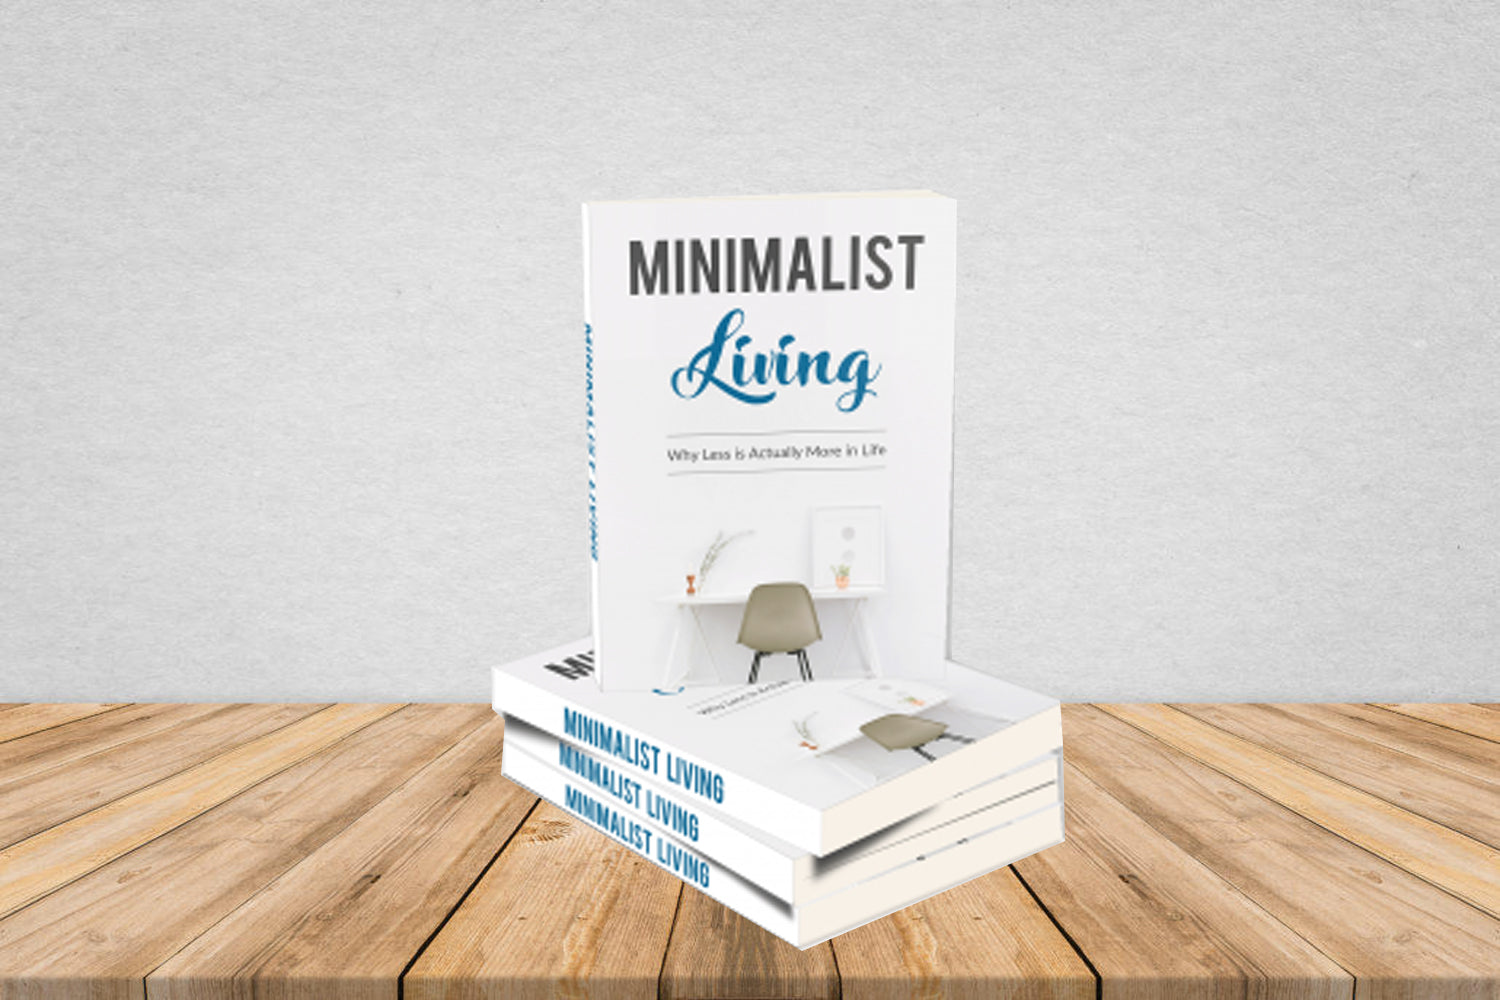 Minimalist Living – Why Less Is Actually More In Life